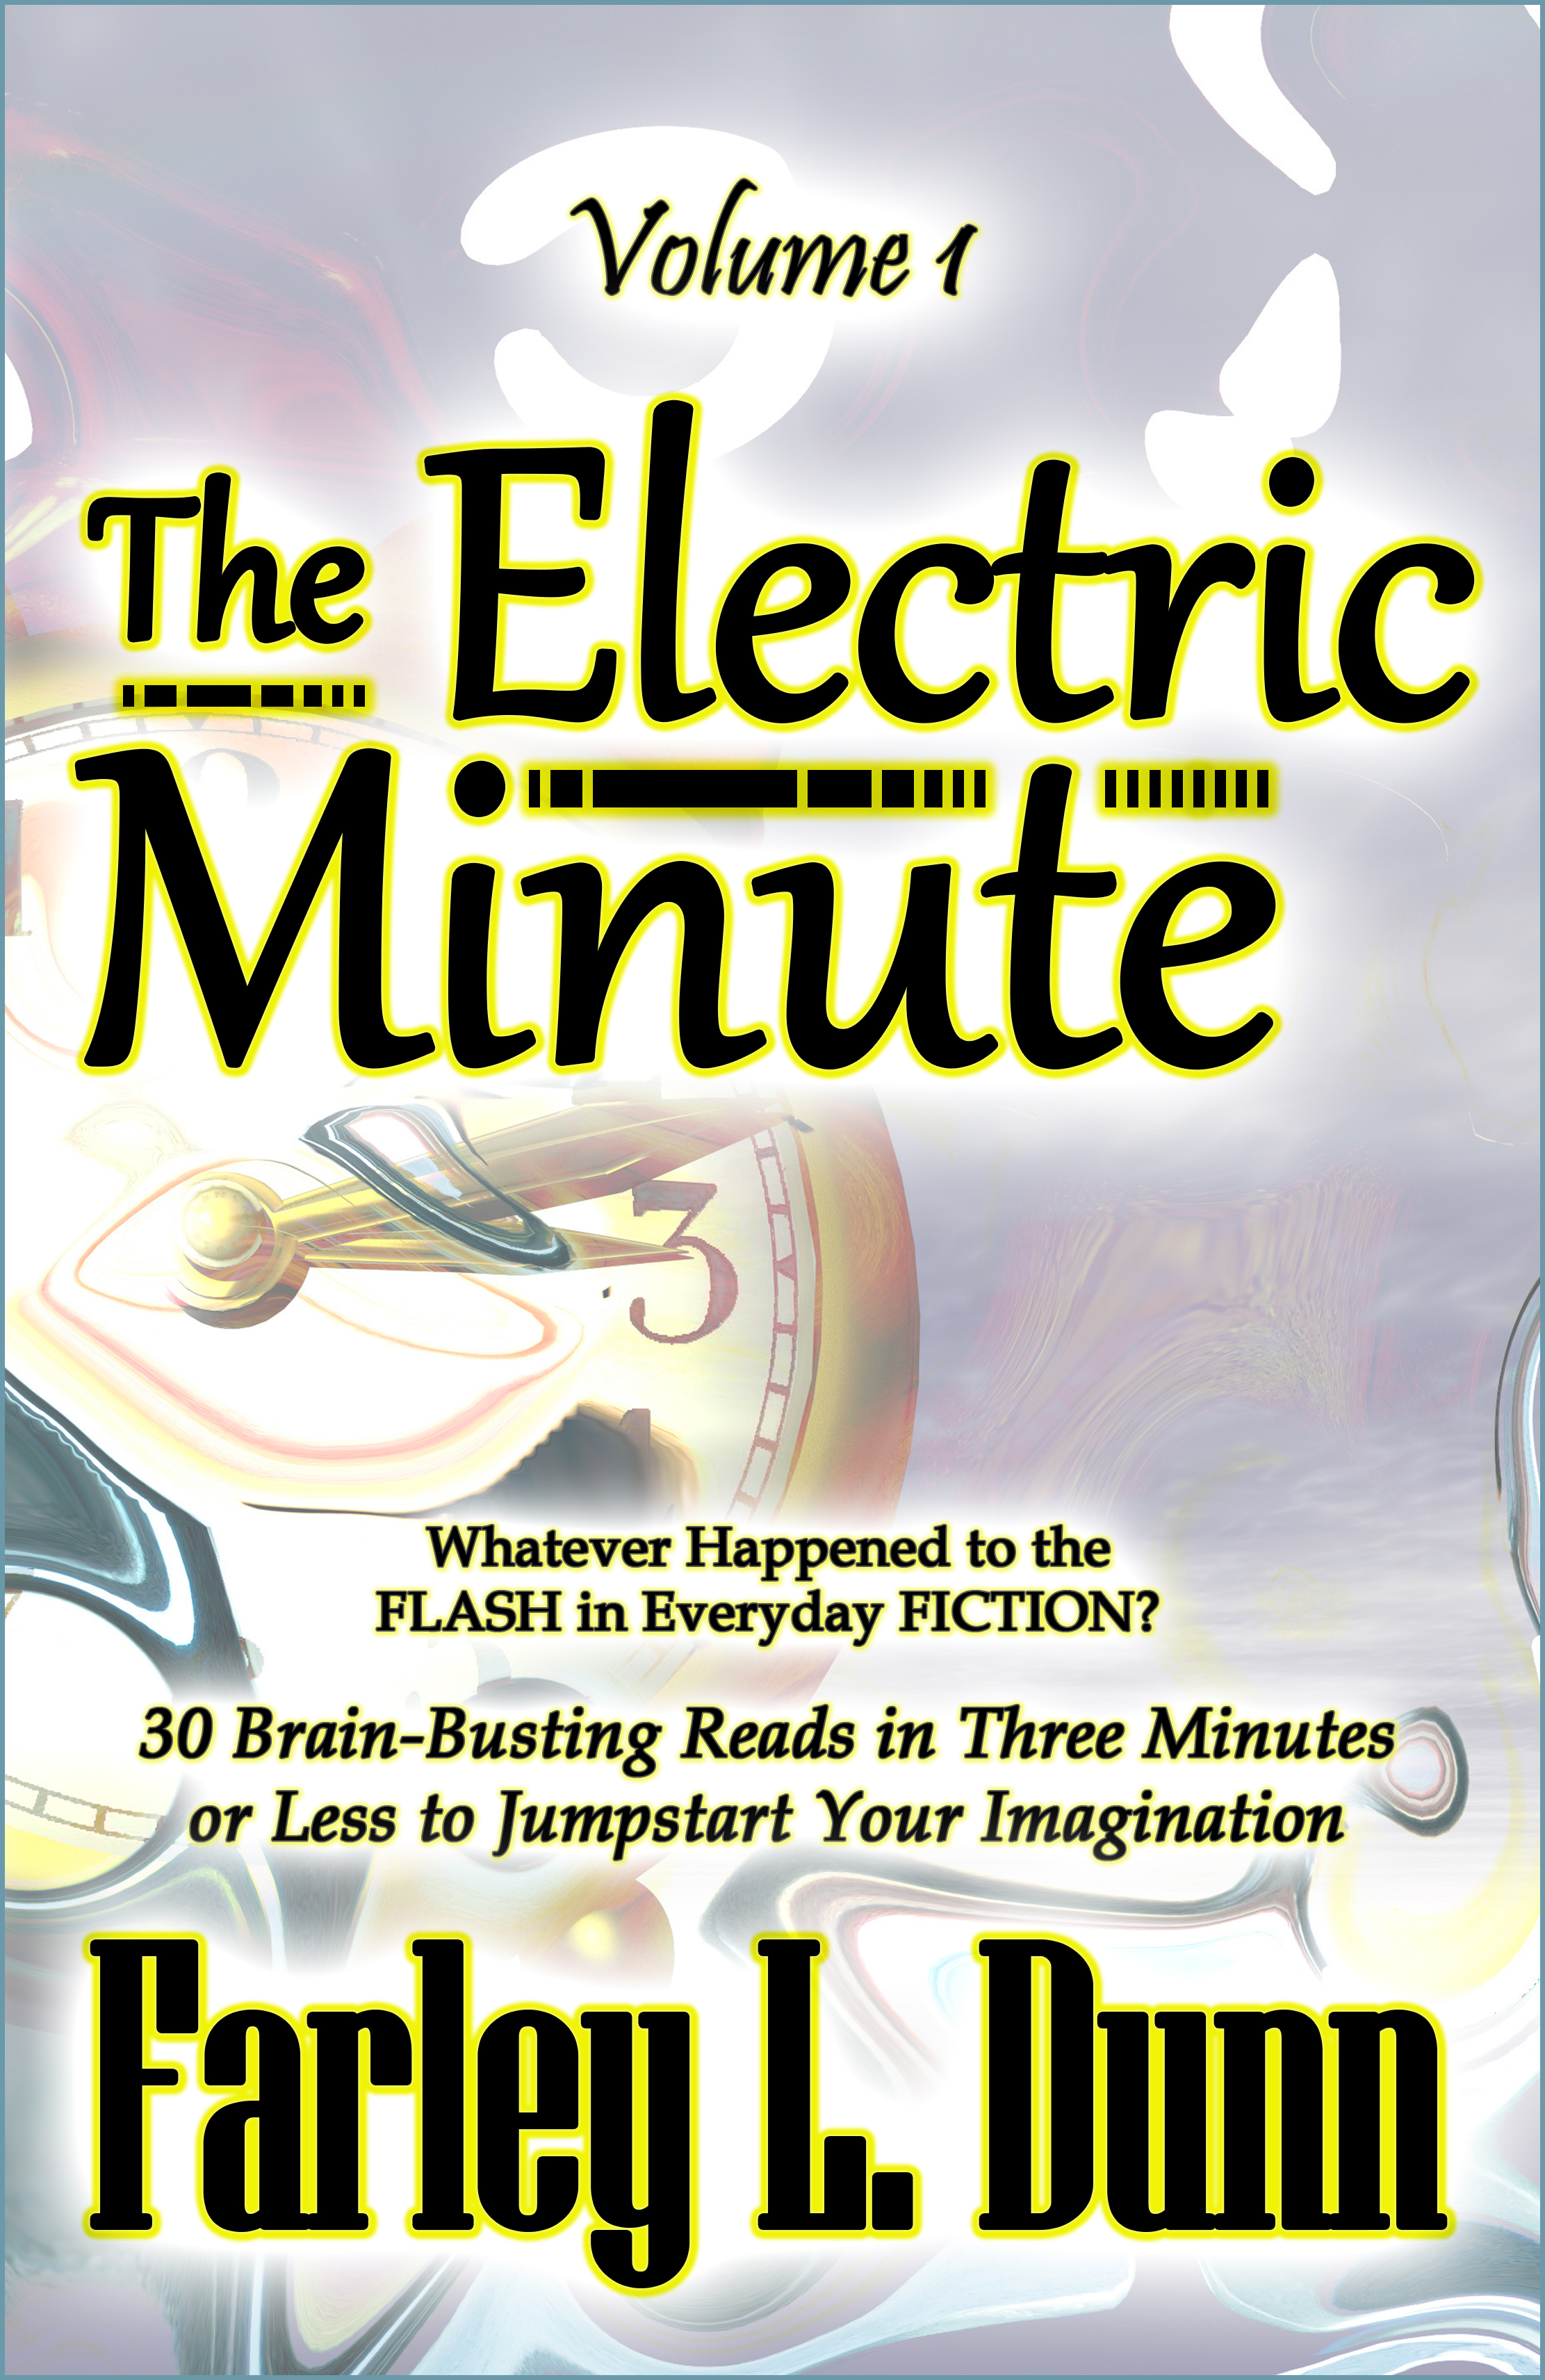 The Electric Minute Cover Front V3